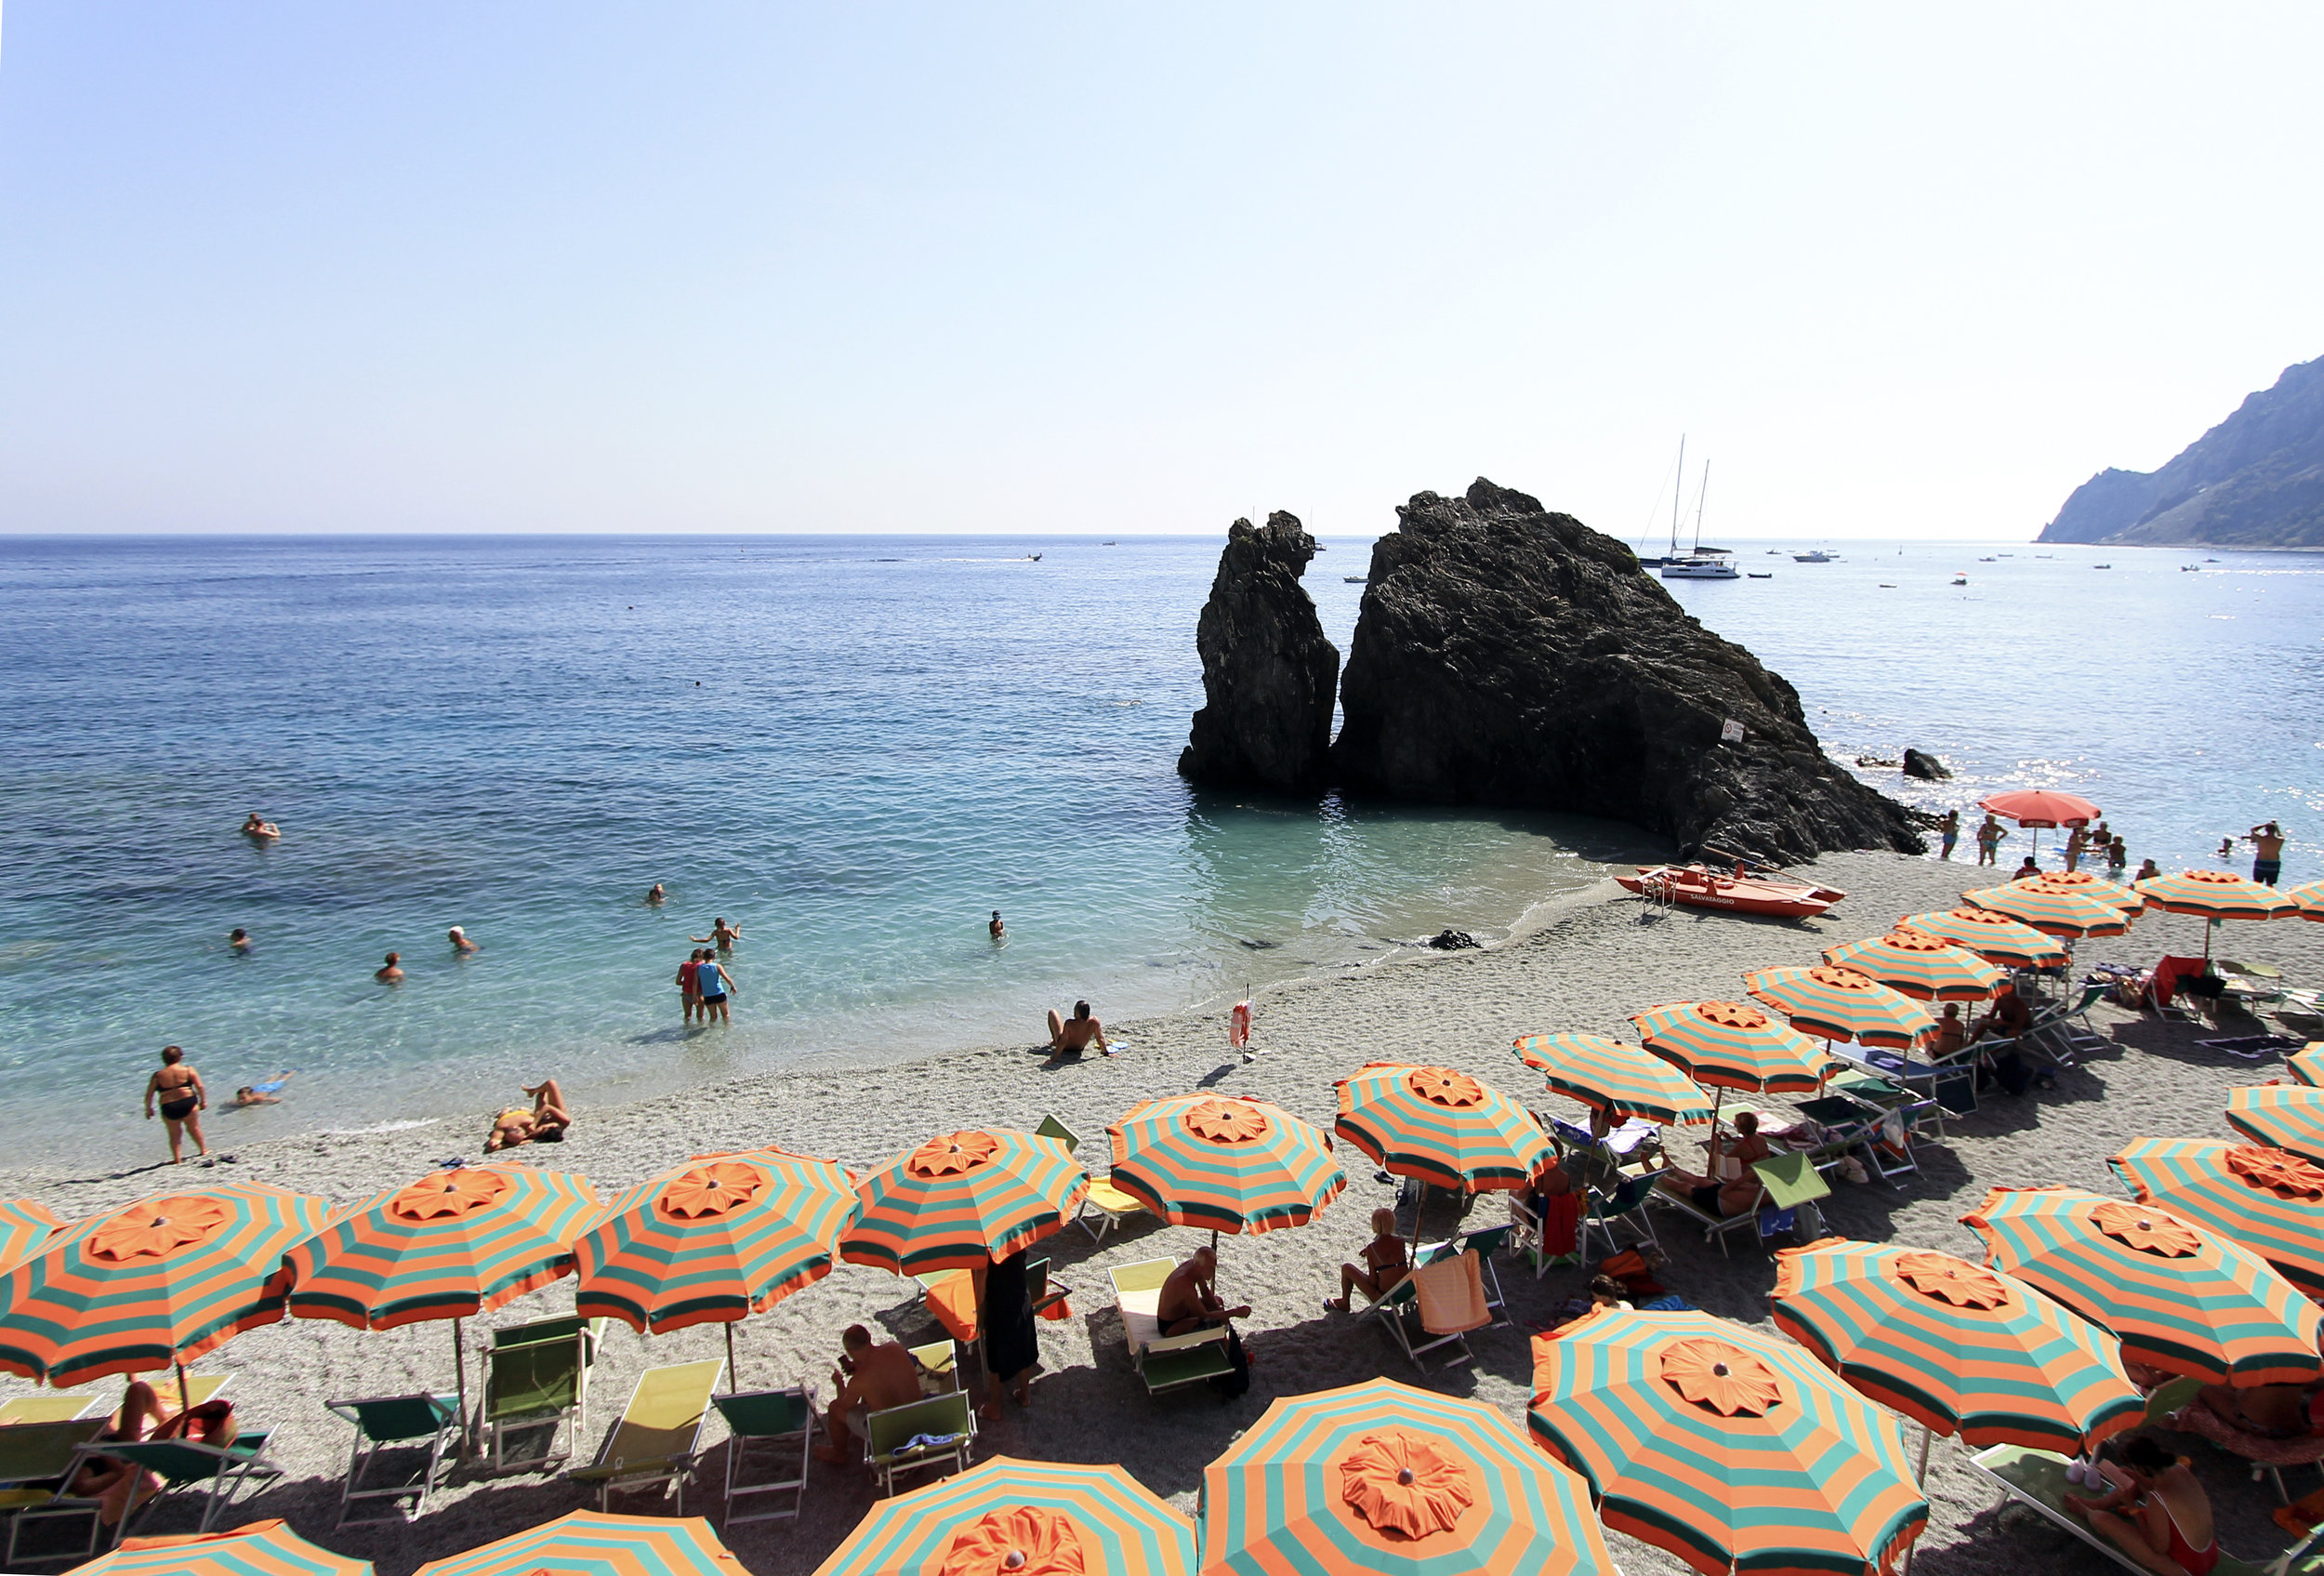 Monterosso striped umbrellas beach chairs rock sea.jpg